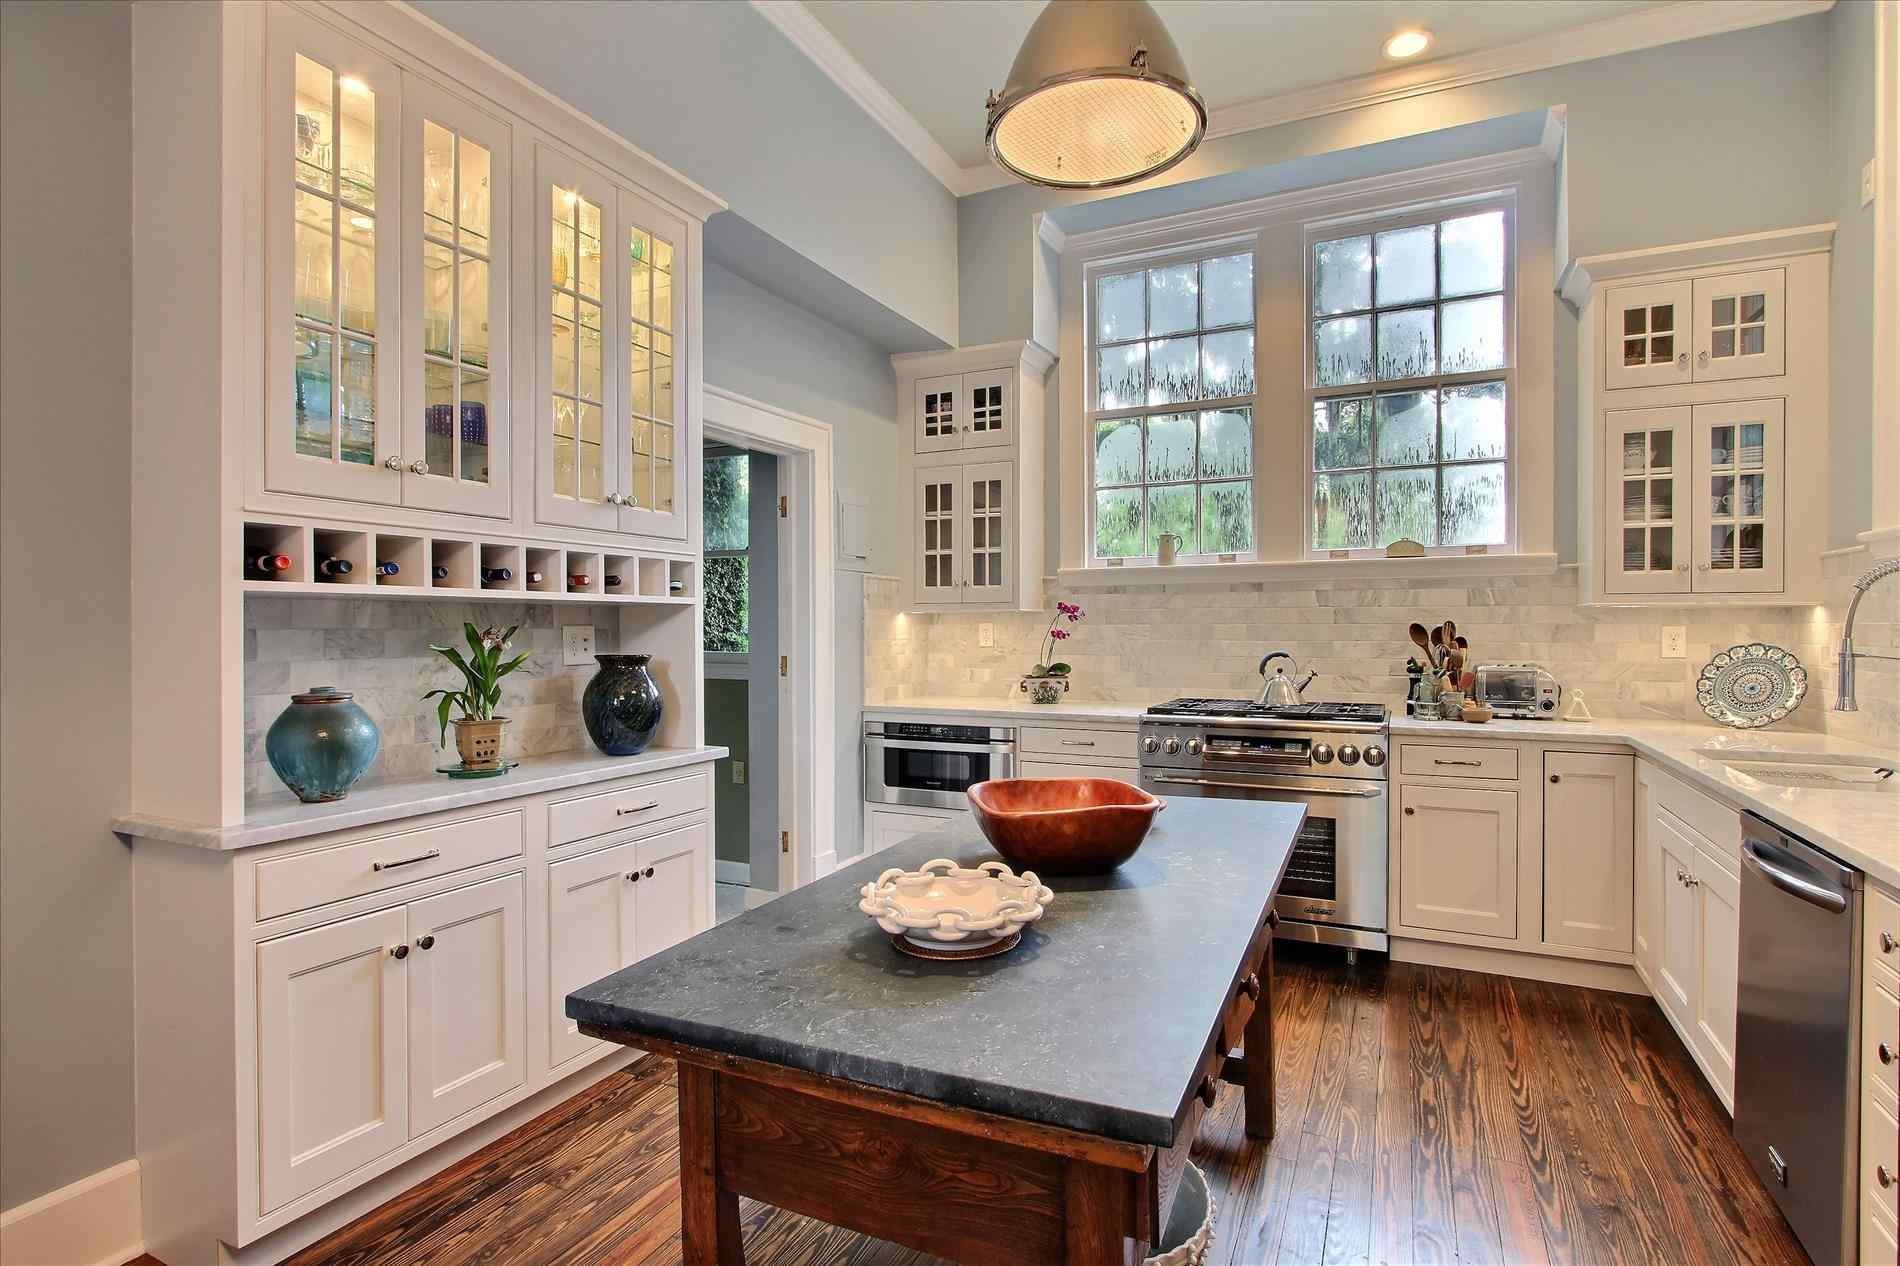 Best ideas about Joanna Gaines Kitchen Ideas . Save or Pin Best And Wonderful 15 Joanna Gaines Kitchen Designs Ideas Now.